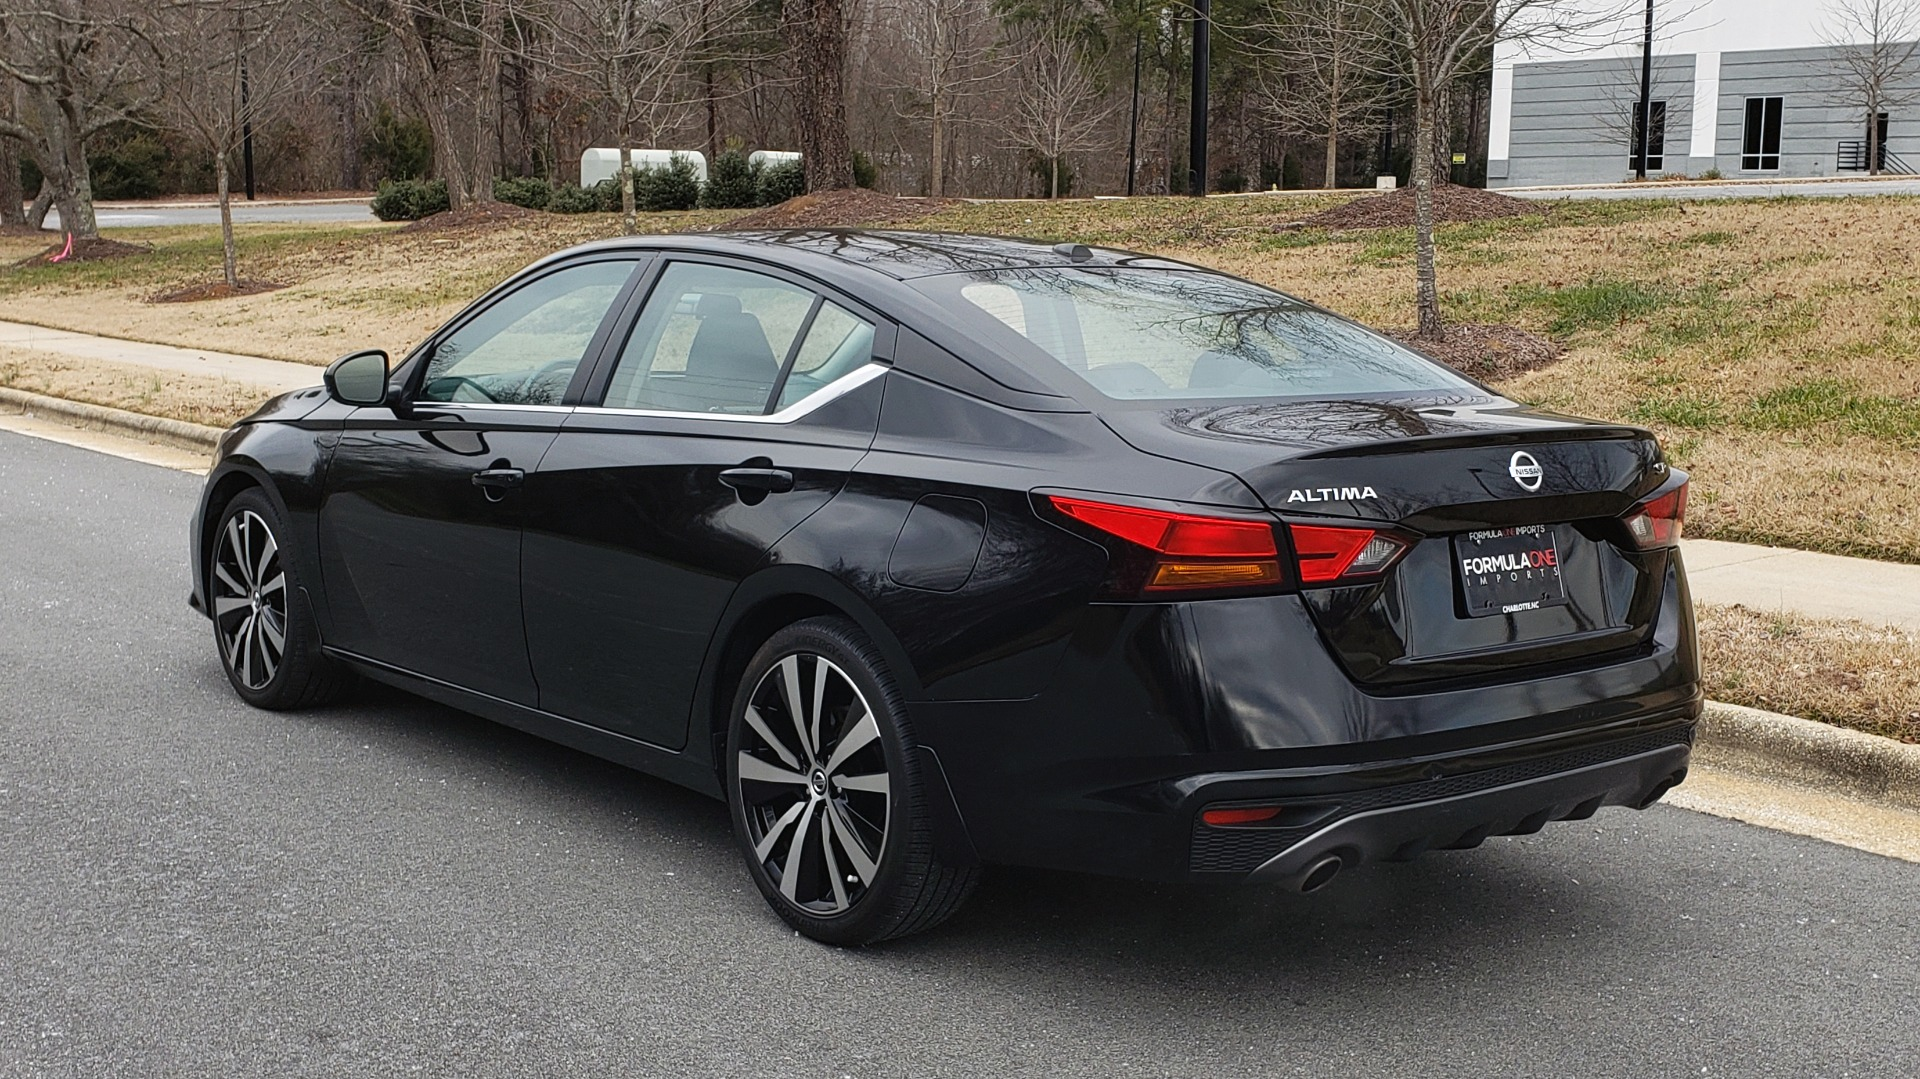 Used 2019 Nissan ALTIMA 2.5 SR PREMIUM / 2.5L / CVT TRANS / HTD STS / SUNROOF / REARVIEW for sale $19,995 at Formula Imports in Charlotte NC 28227 4